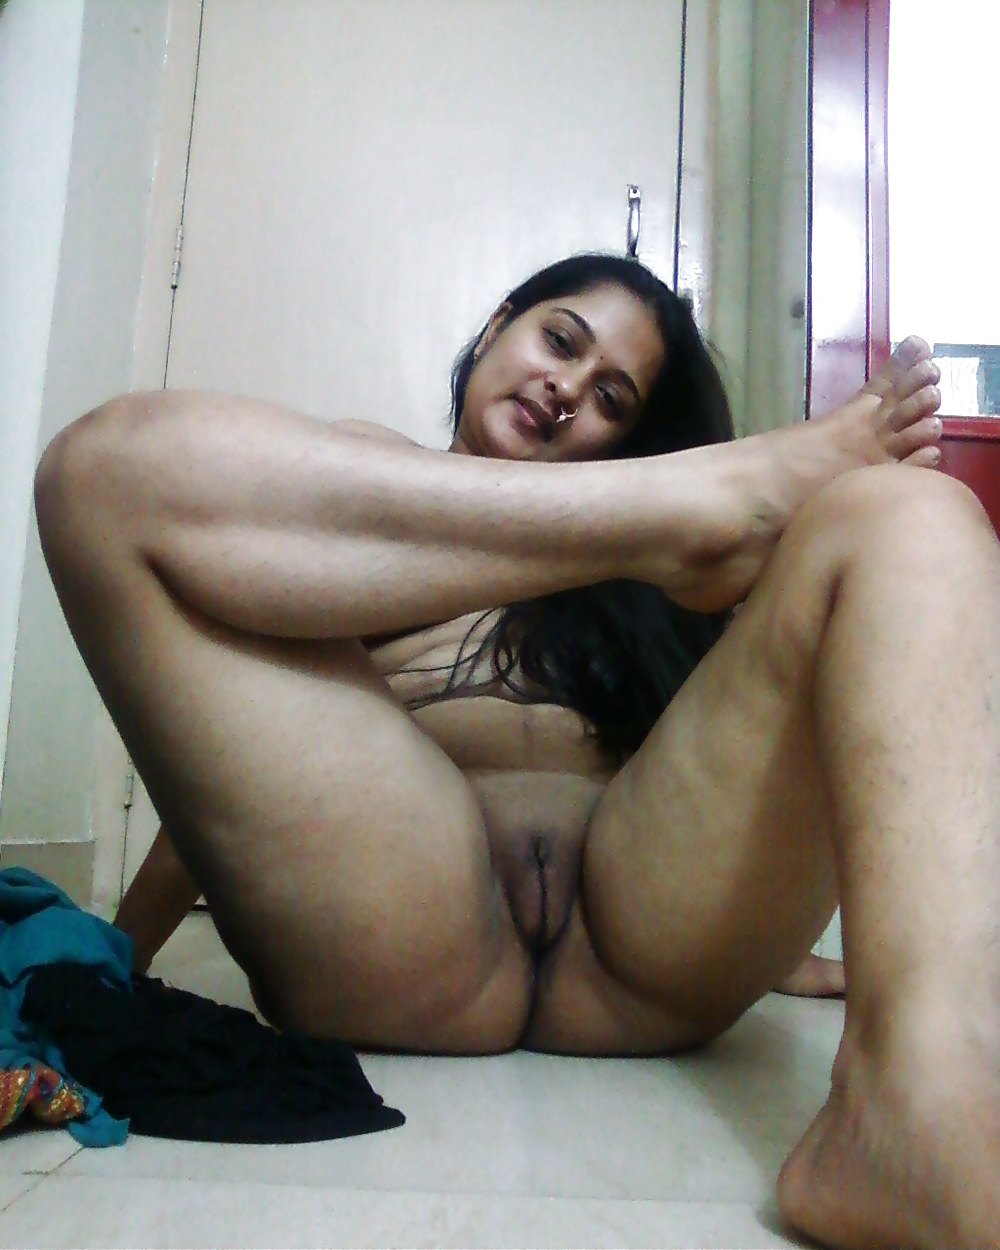 punjabi-virgin-porn-karup-chick-strip